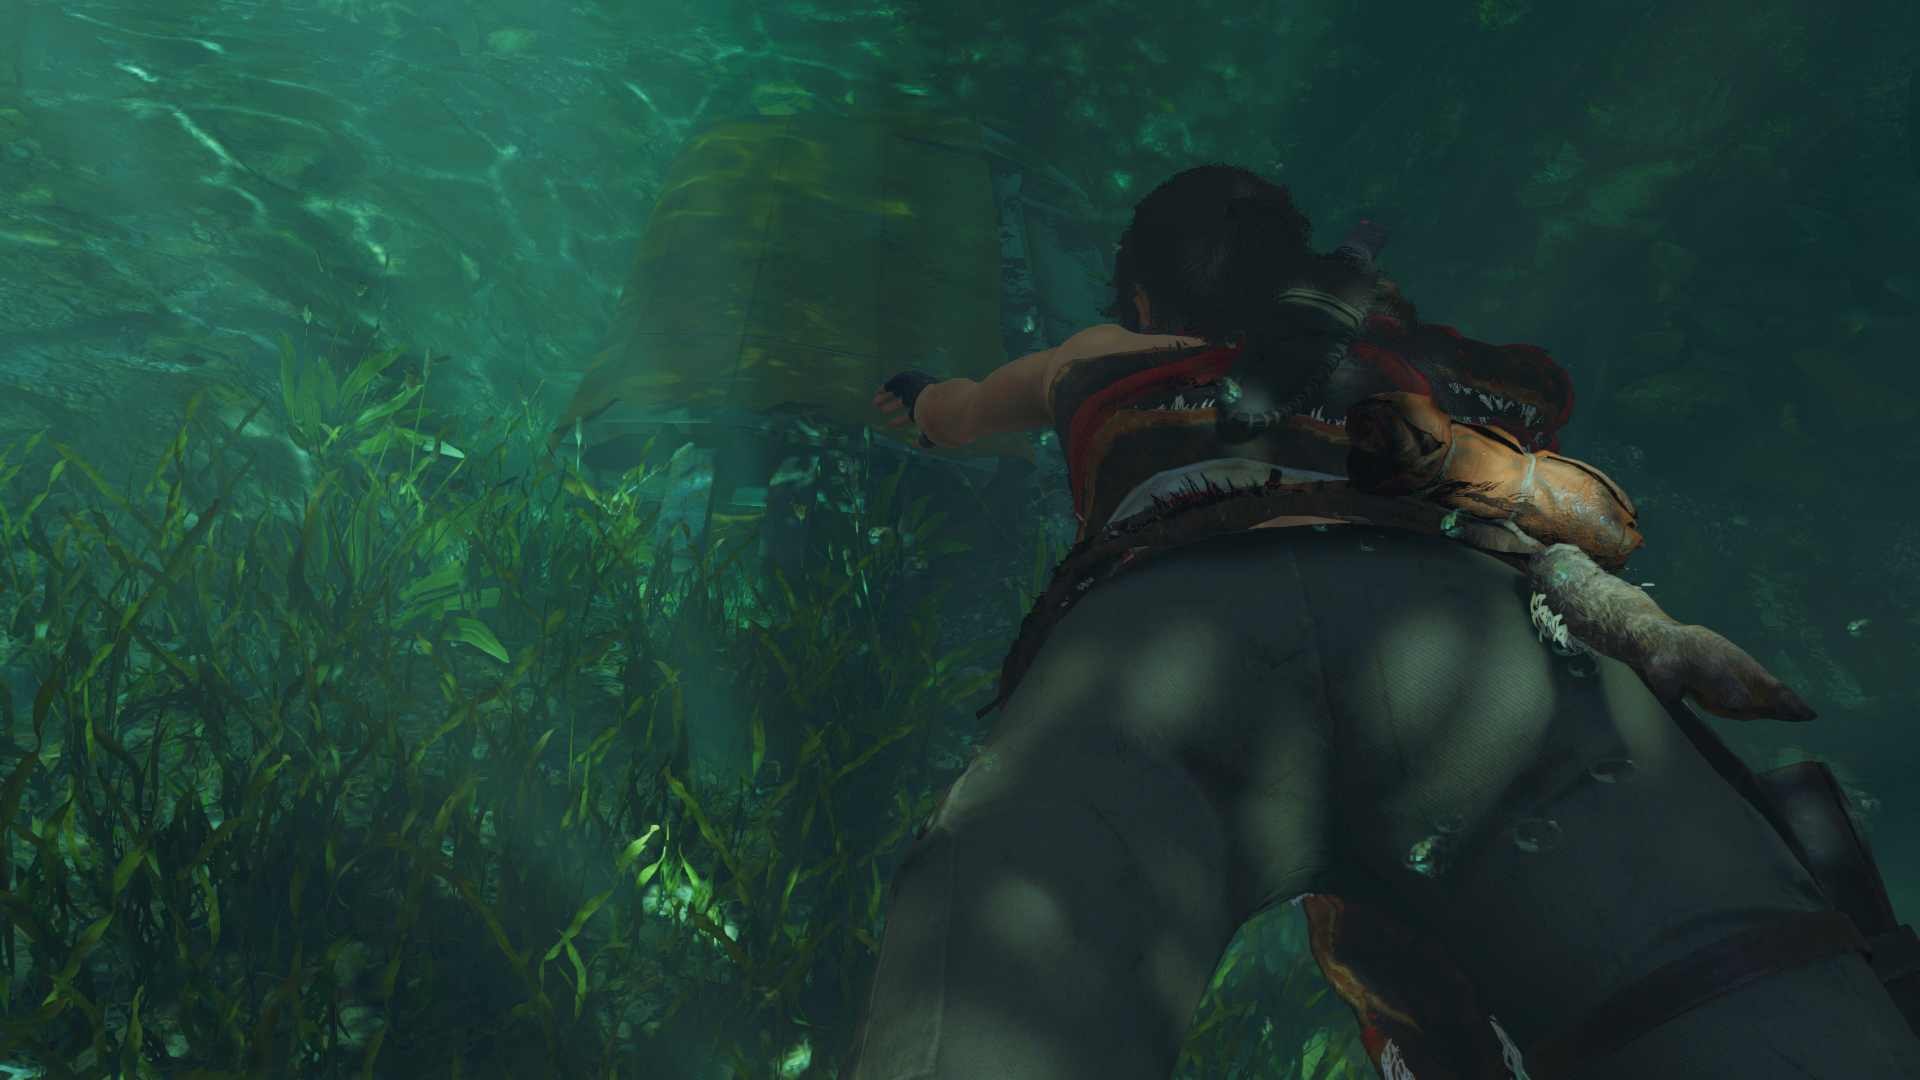 sottr 2018-11-22 22-03-40.png - Shadow of the Tomb Raider